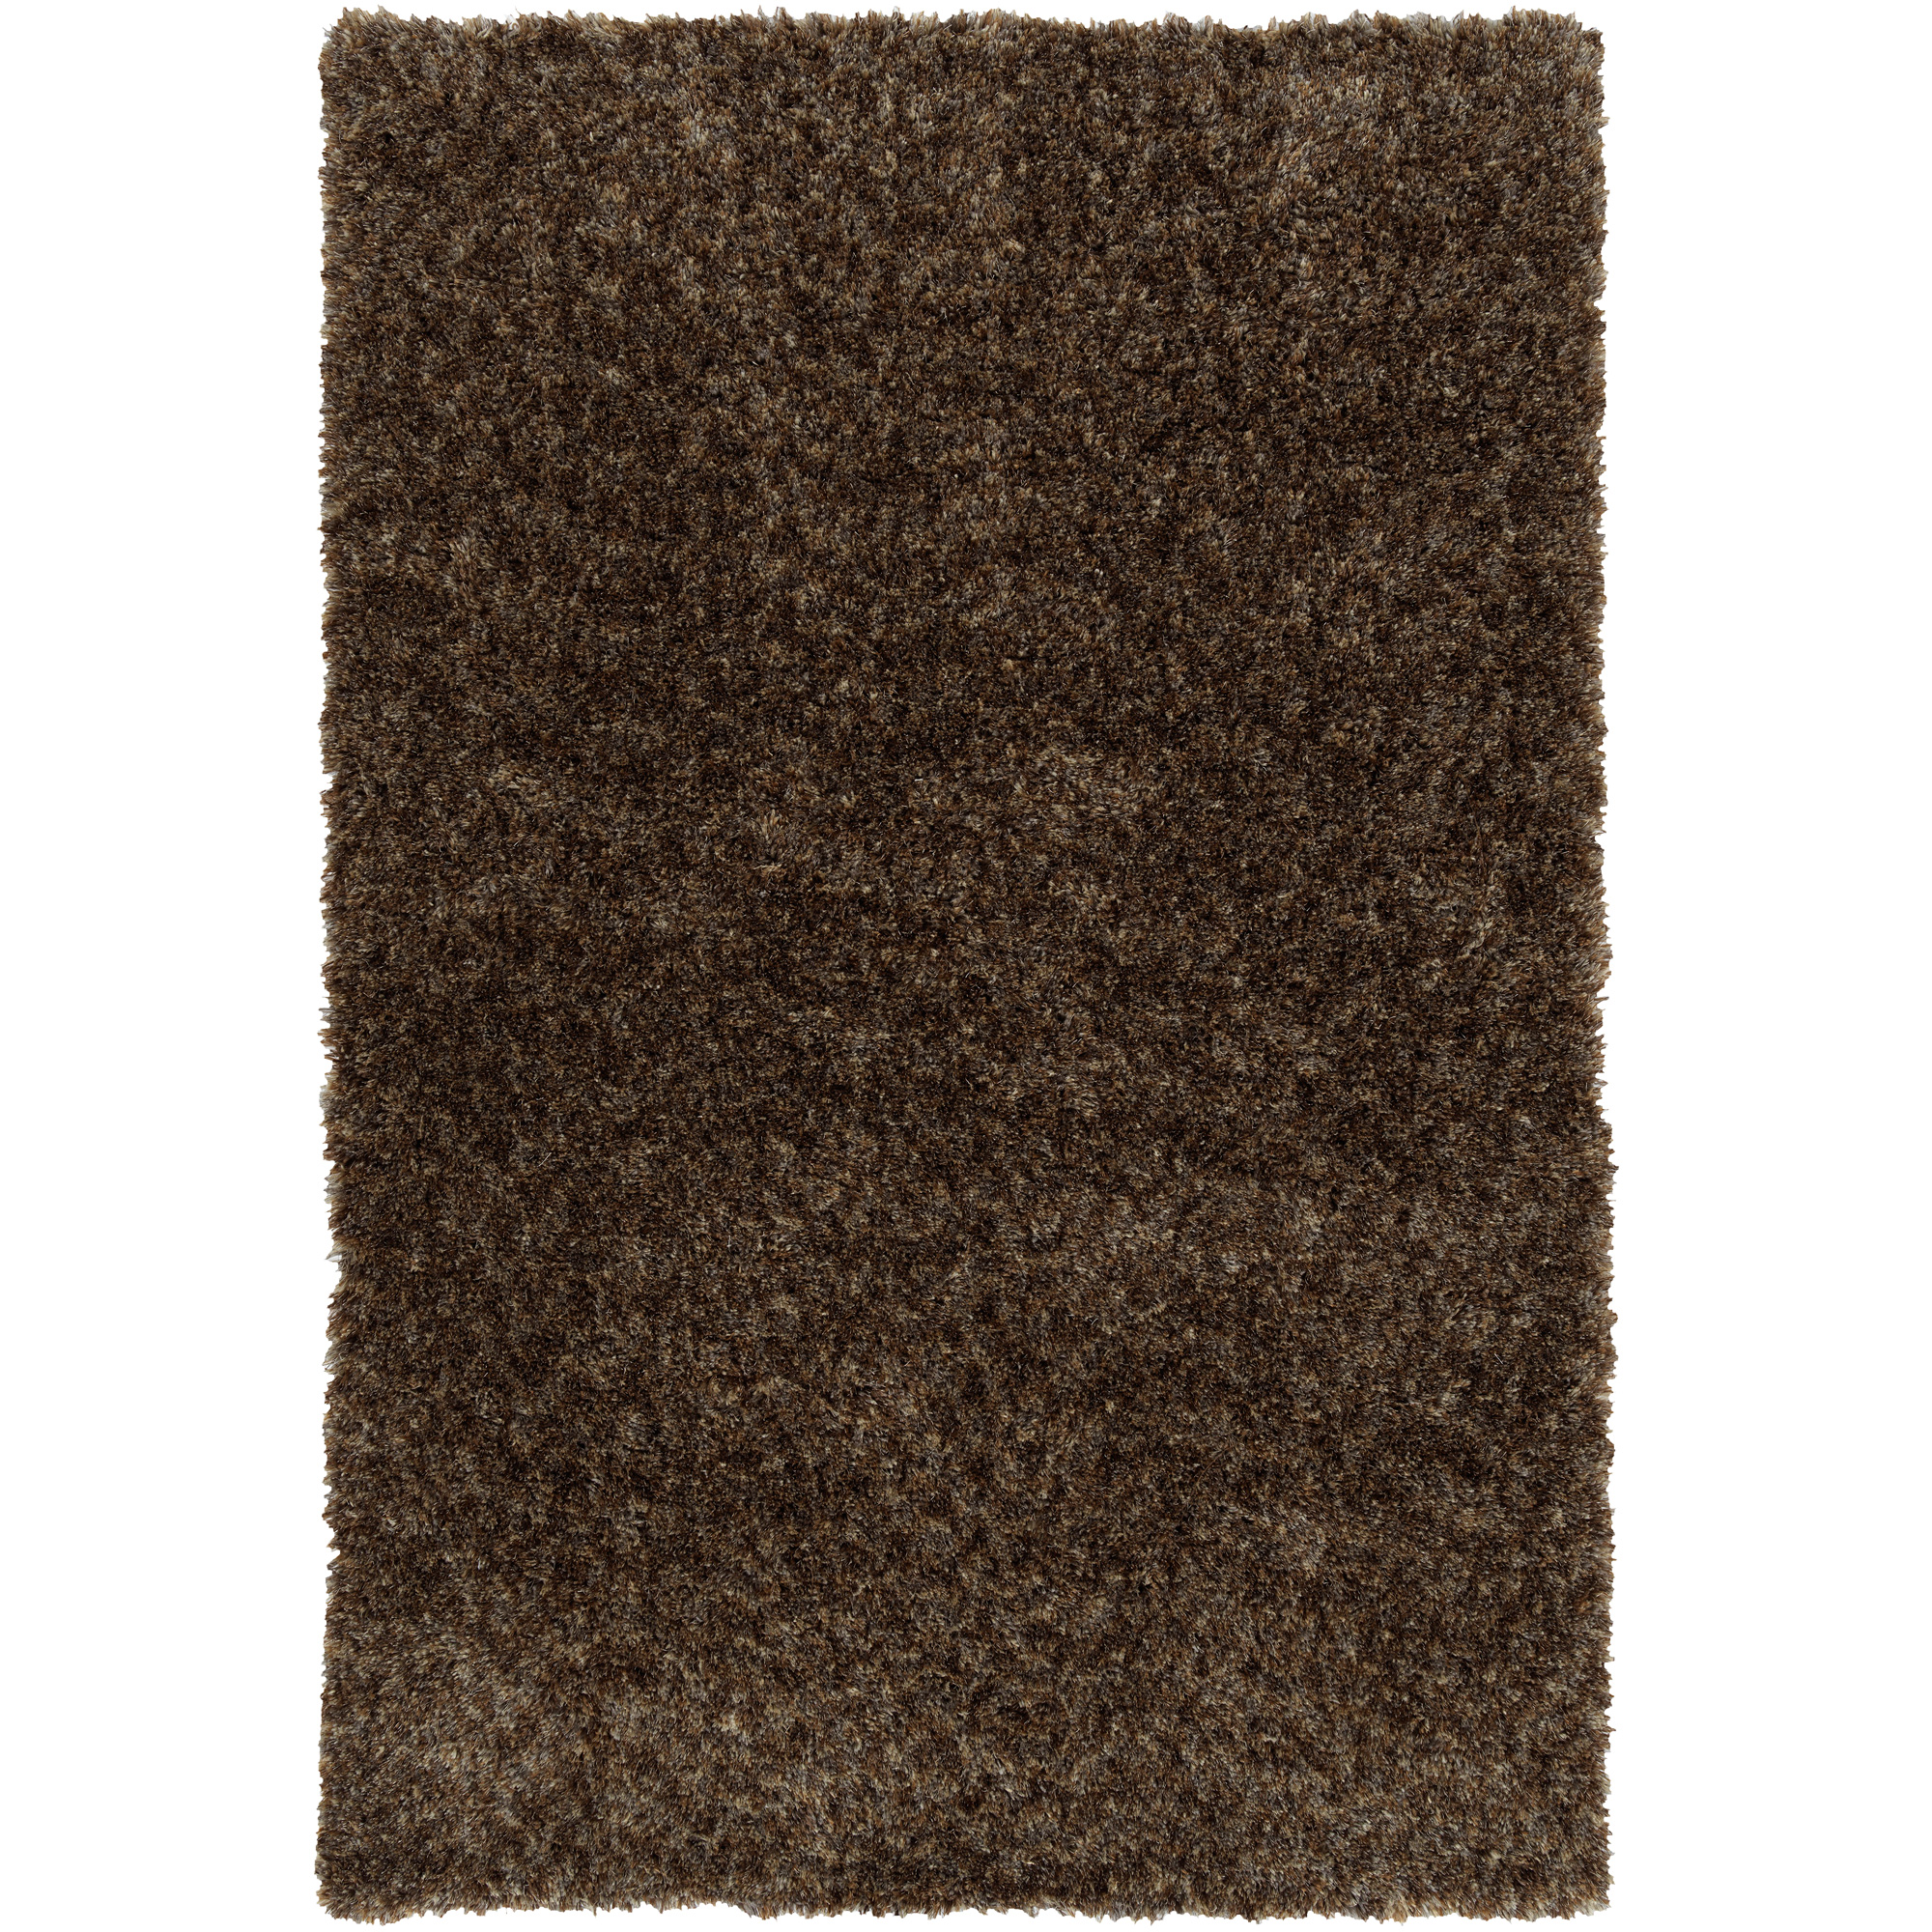 Dalyn Rug | Cabot Chocolate 8x10 Area Rug